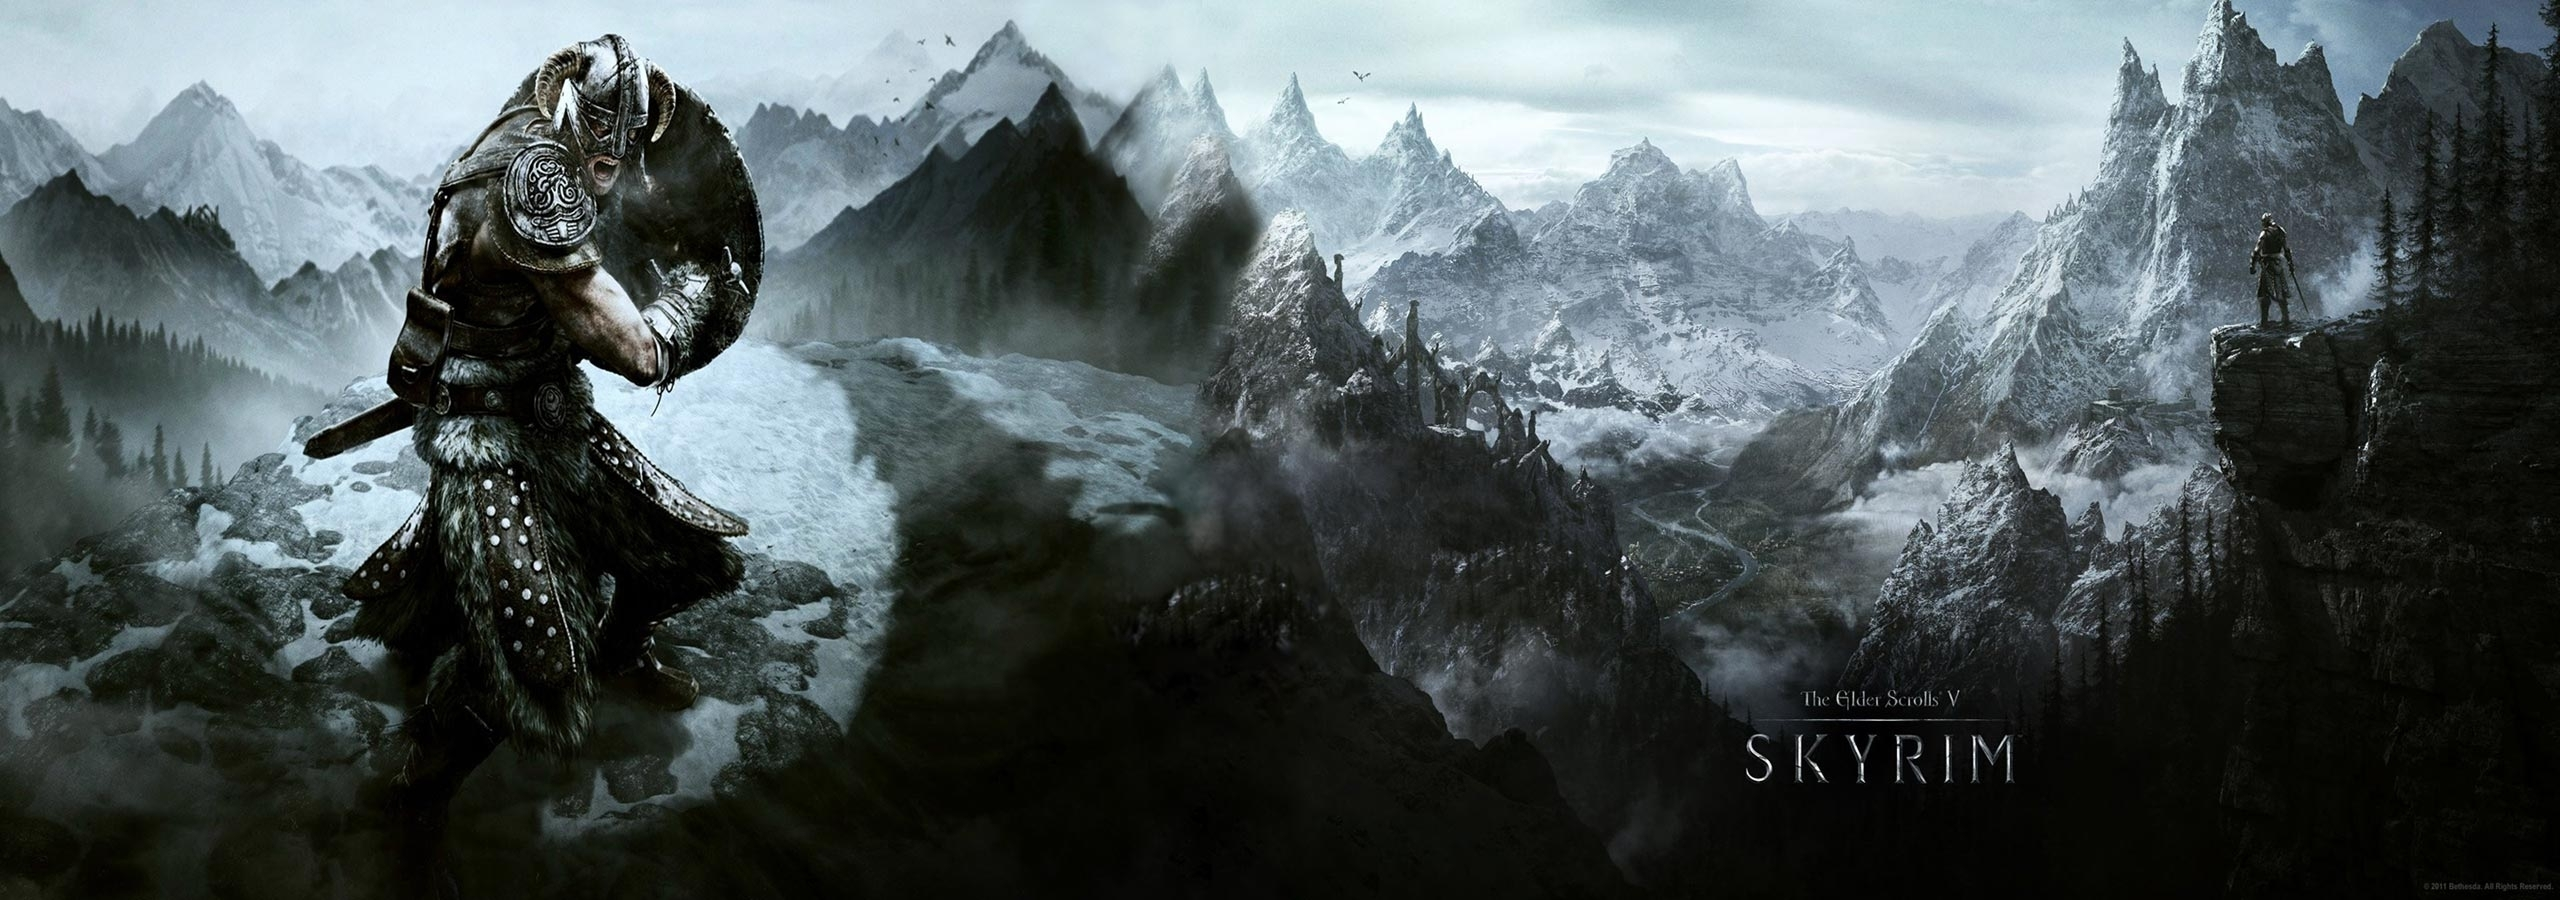 skyrim dual screen wallpaper | 2560x900 | id:60839 - wallpapervortex